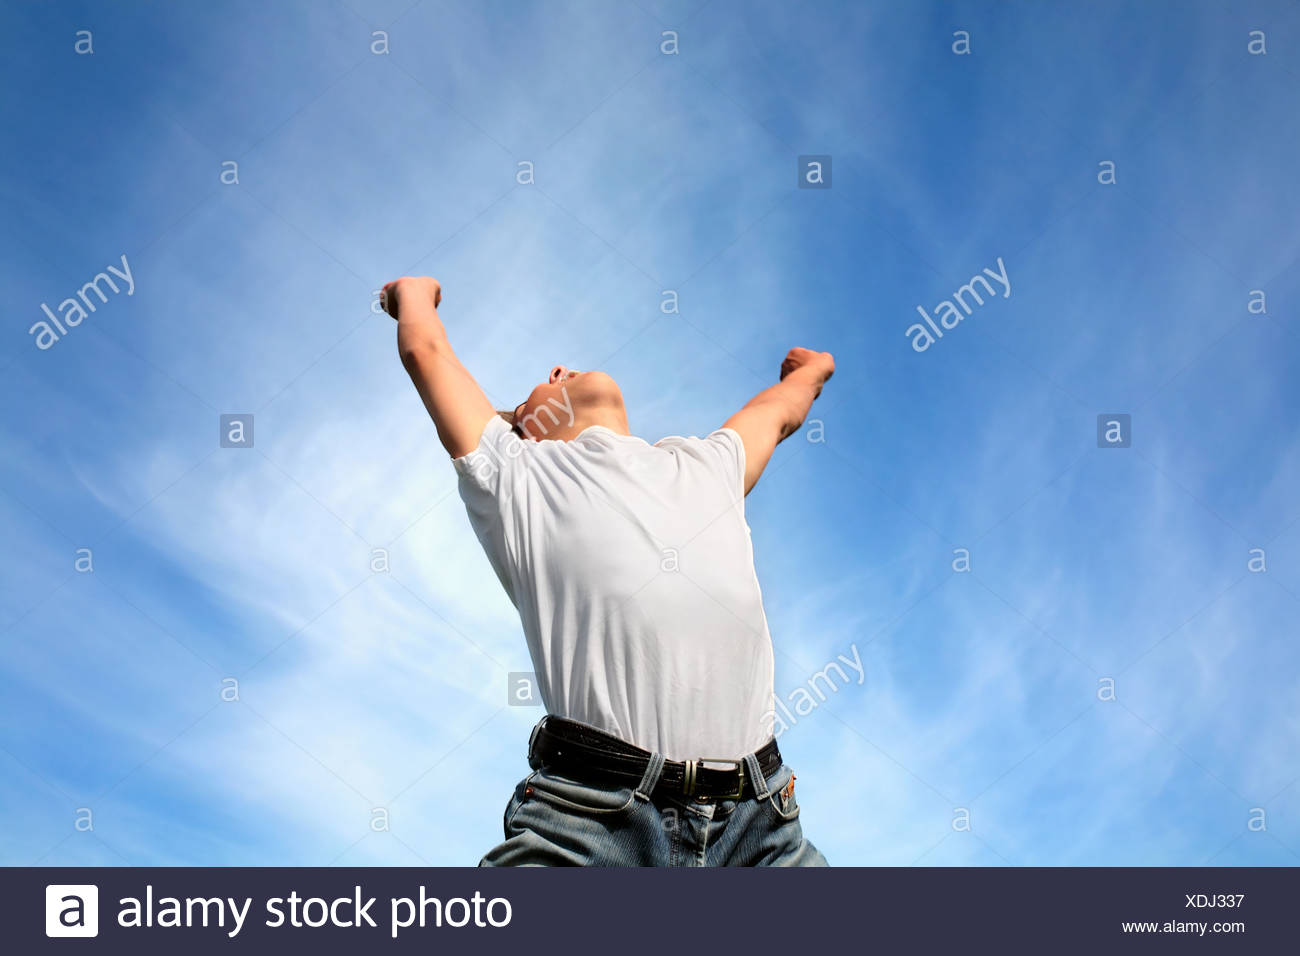 teenager delighted - Stock Image